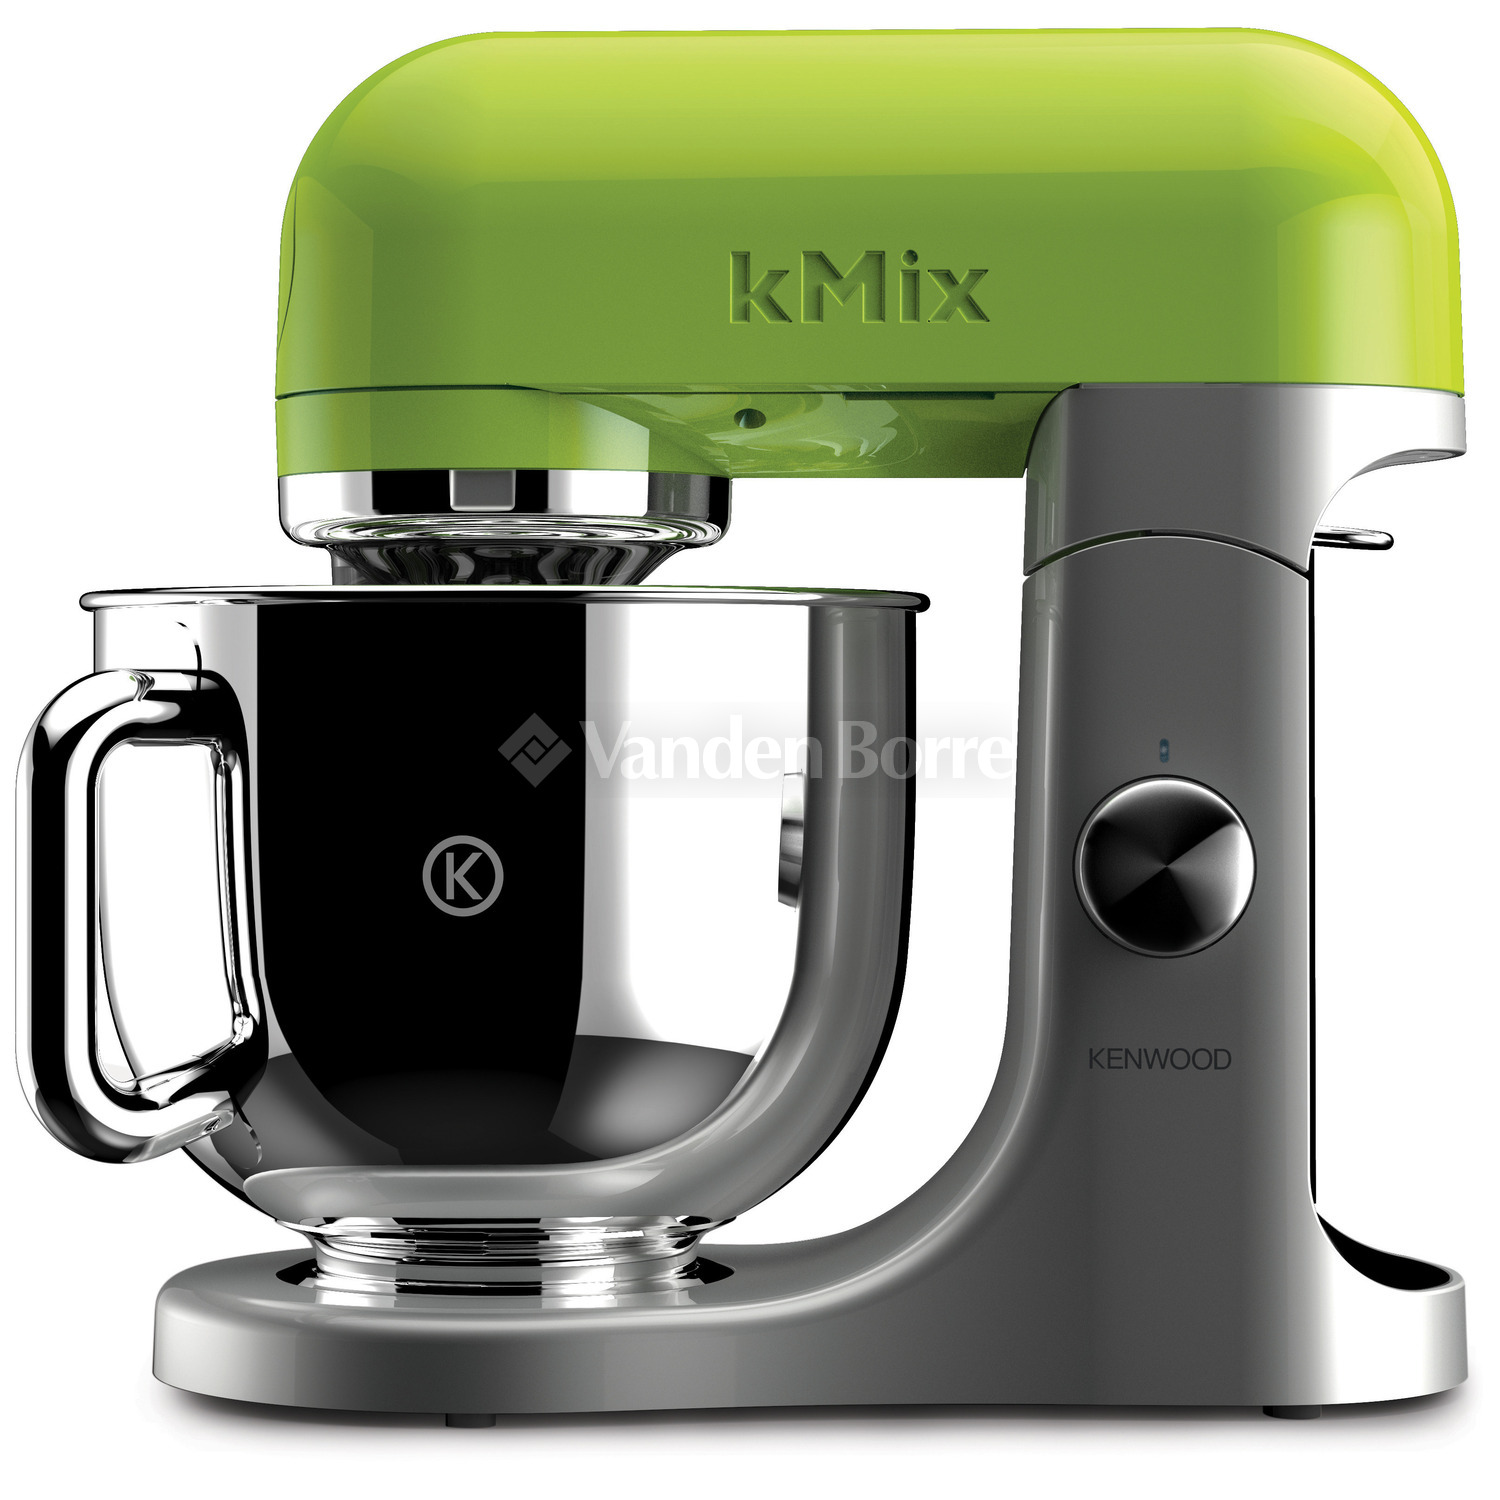 kenwood kmix kmx50 green lime chez vanden borre comparez et achetez facilement. Black Bedroom Furniture Sets. Home Design Ideas